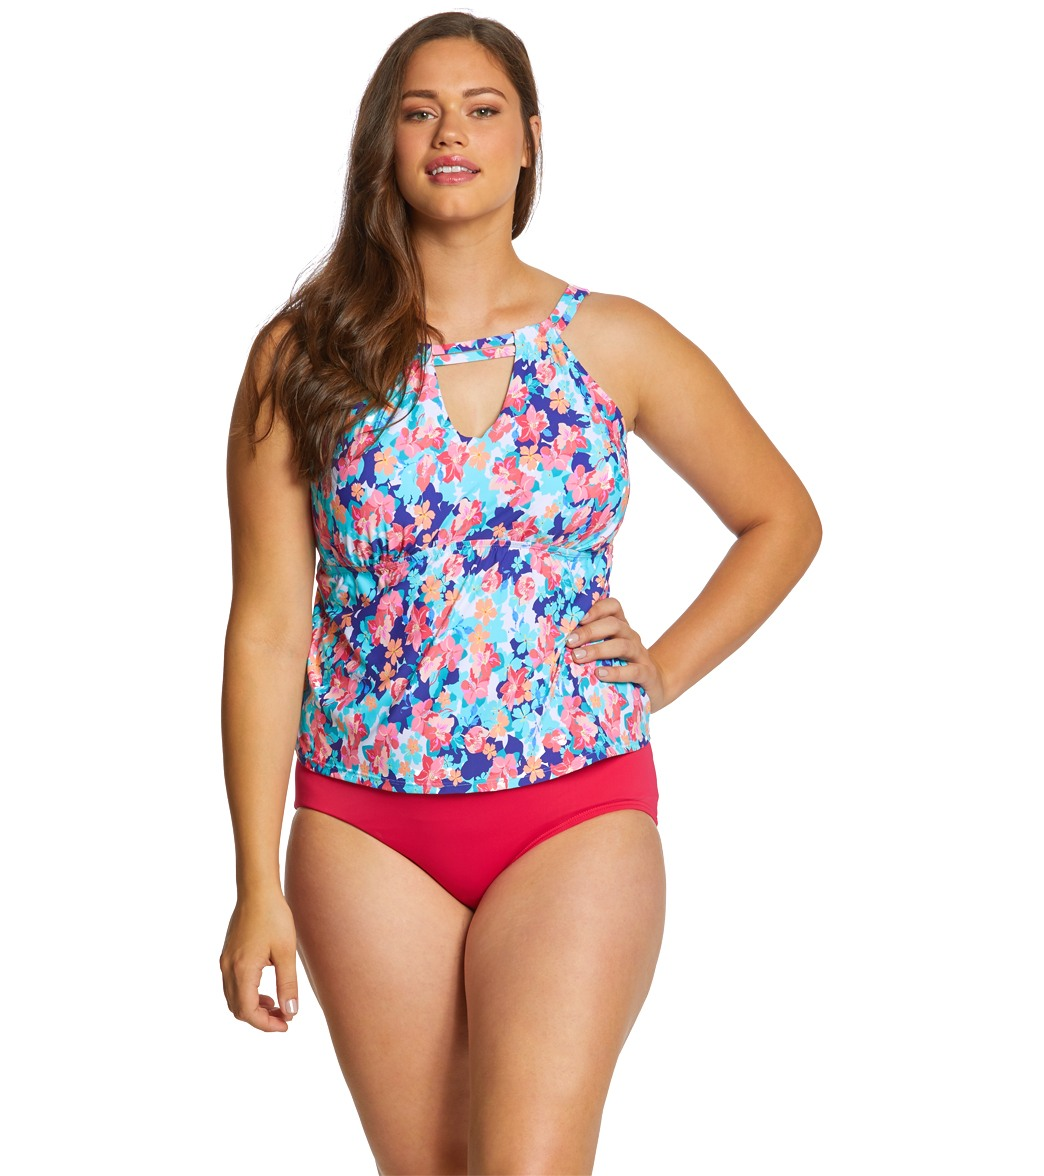 50b66a66711 Sunsets Curve Plus Size Flower Bed Hannah Hi-Neck Tankini Top (F/G ...